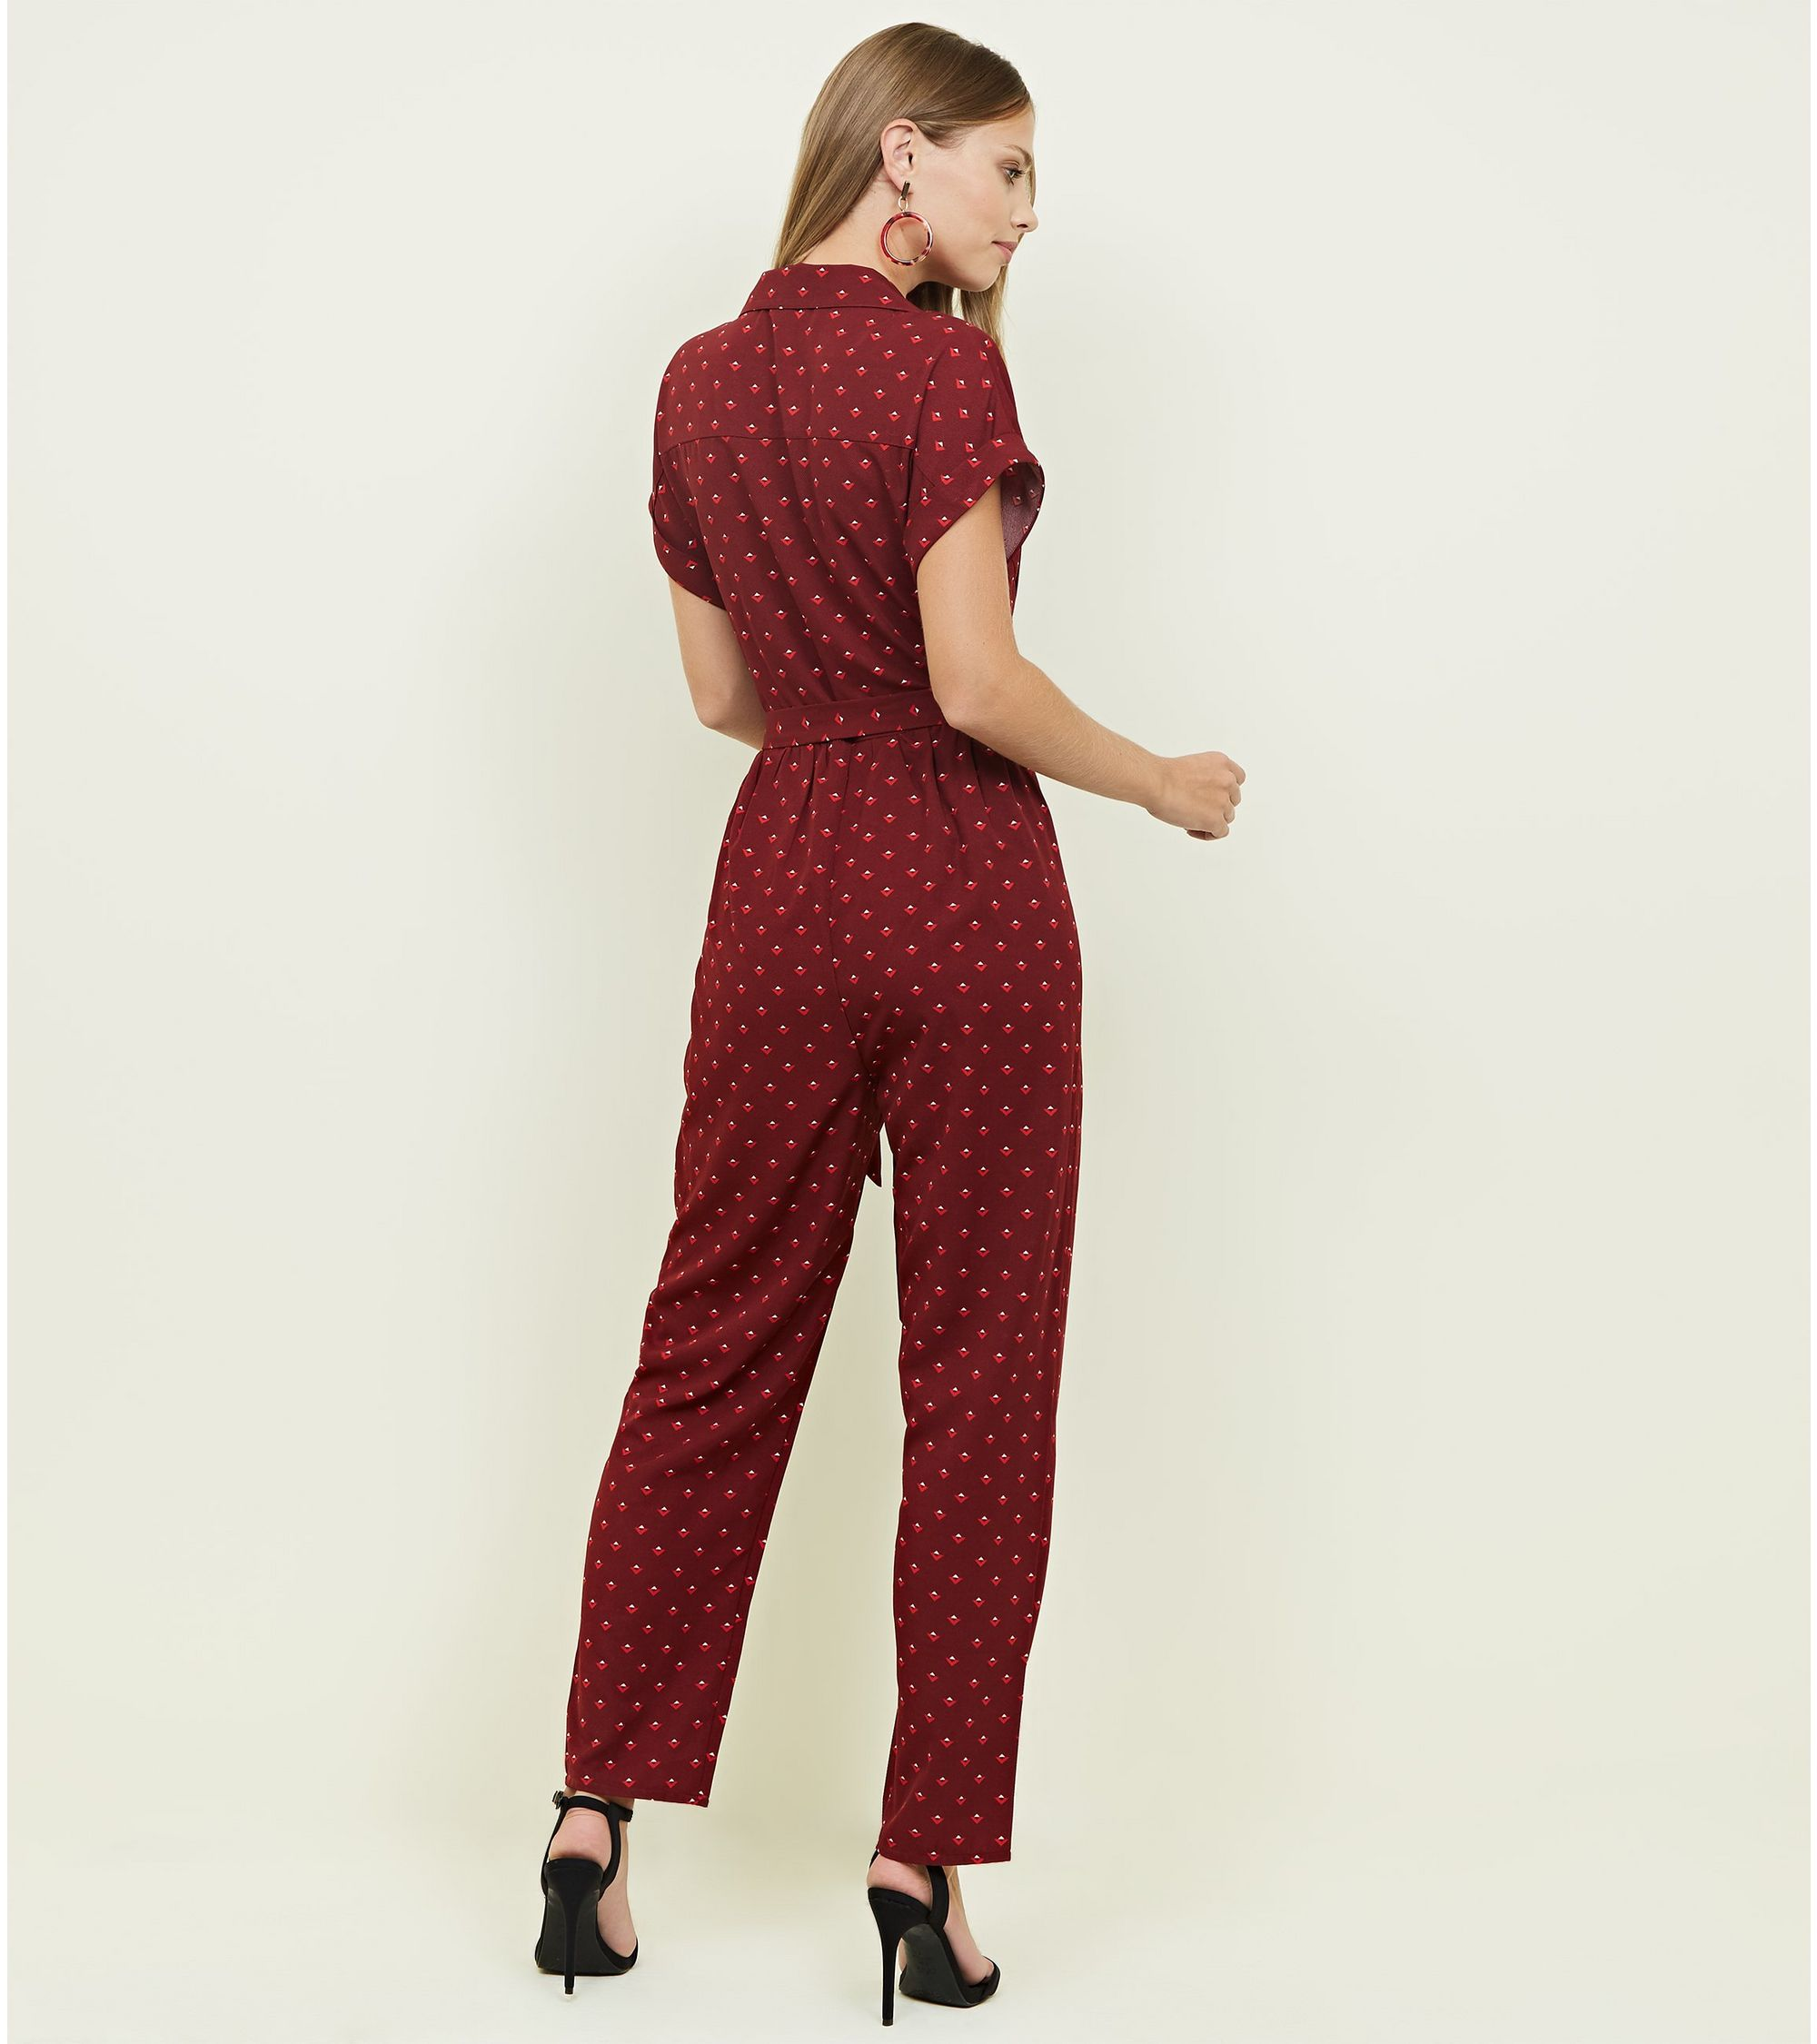 7684aee7c2c New Look Red Geometric Print Twill Utility Jumpsuit at £10